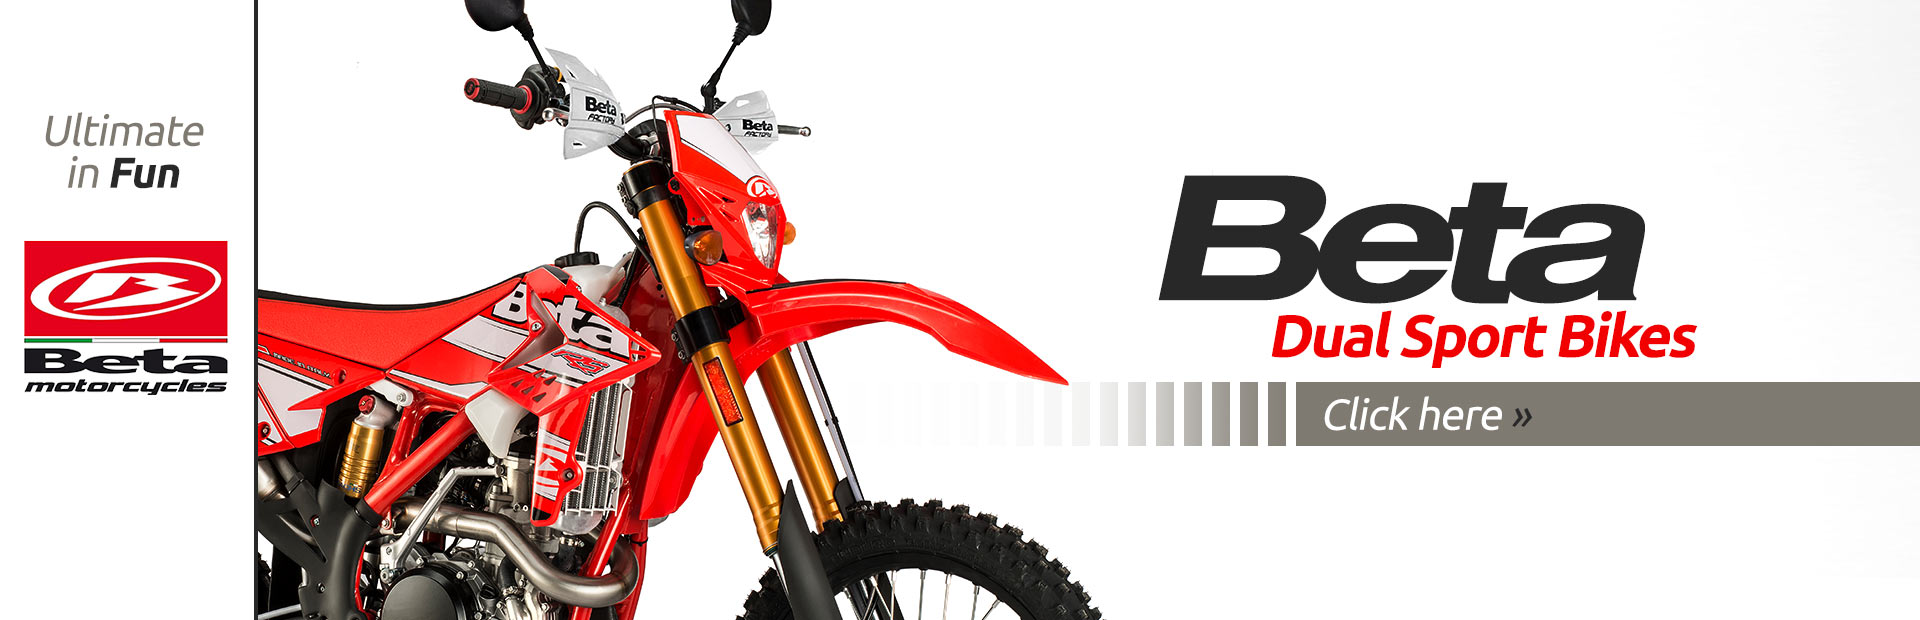 Click here to view our selection of Beta dual sport bikes!